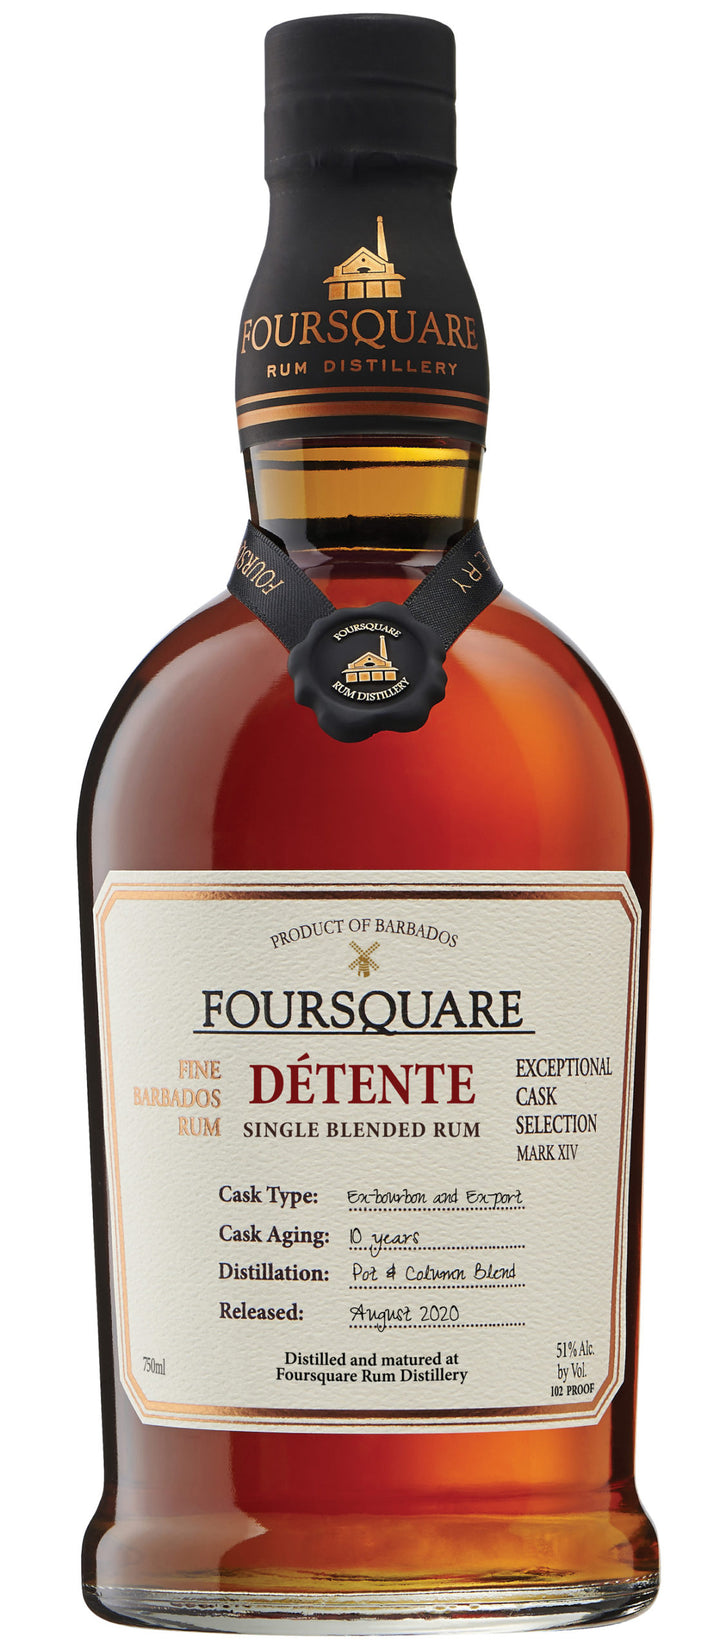 Fourrquare Detente Single Blended Rum